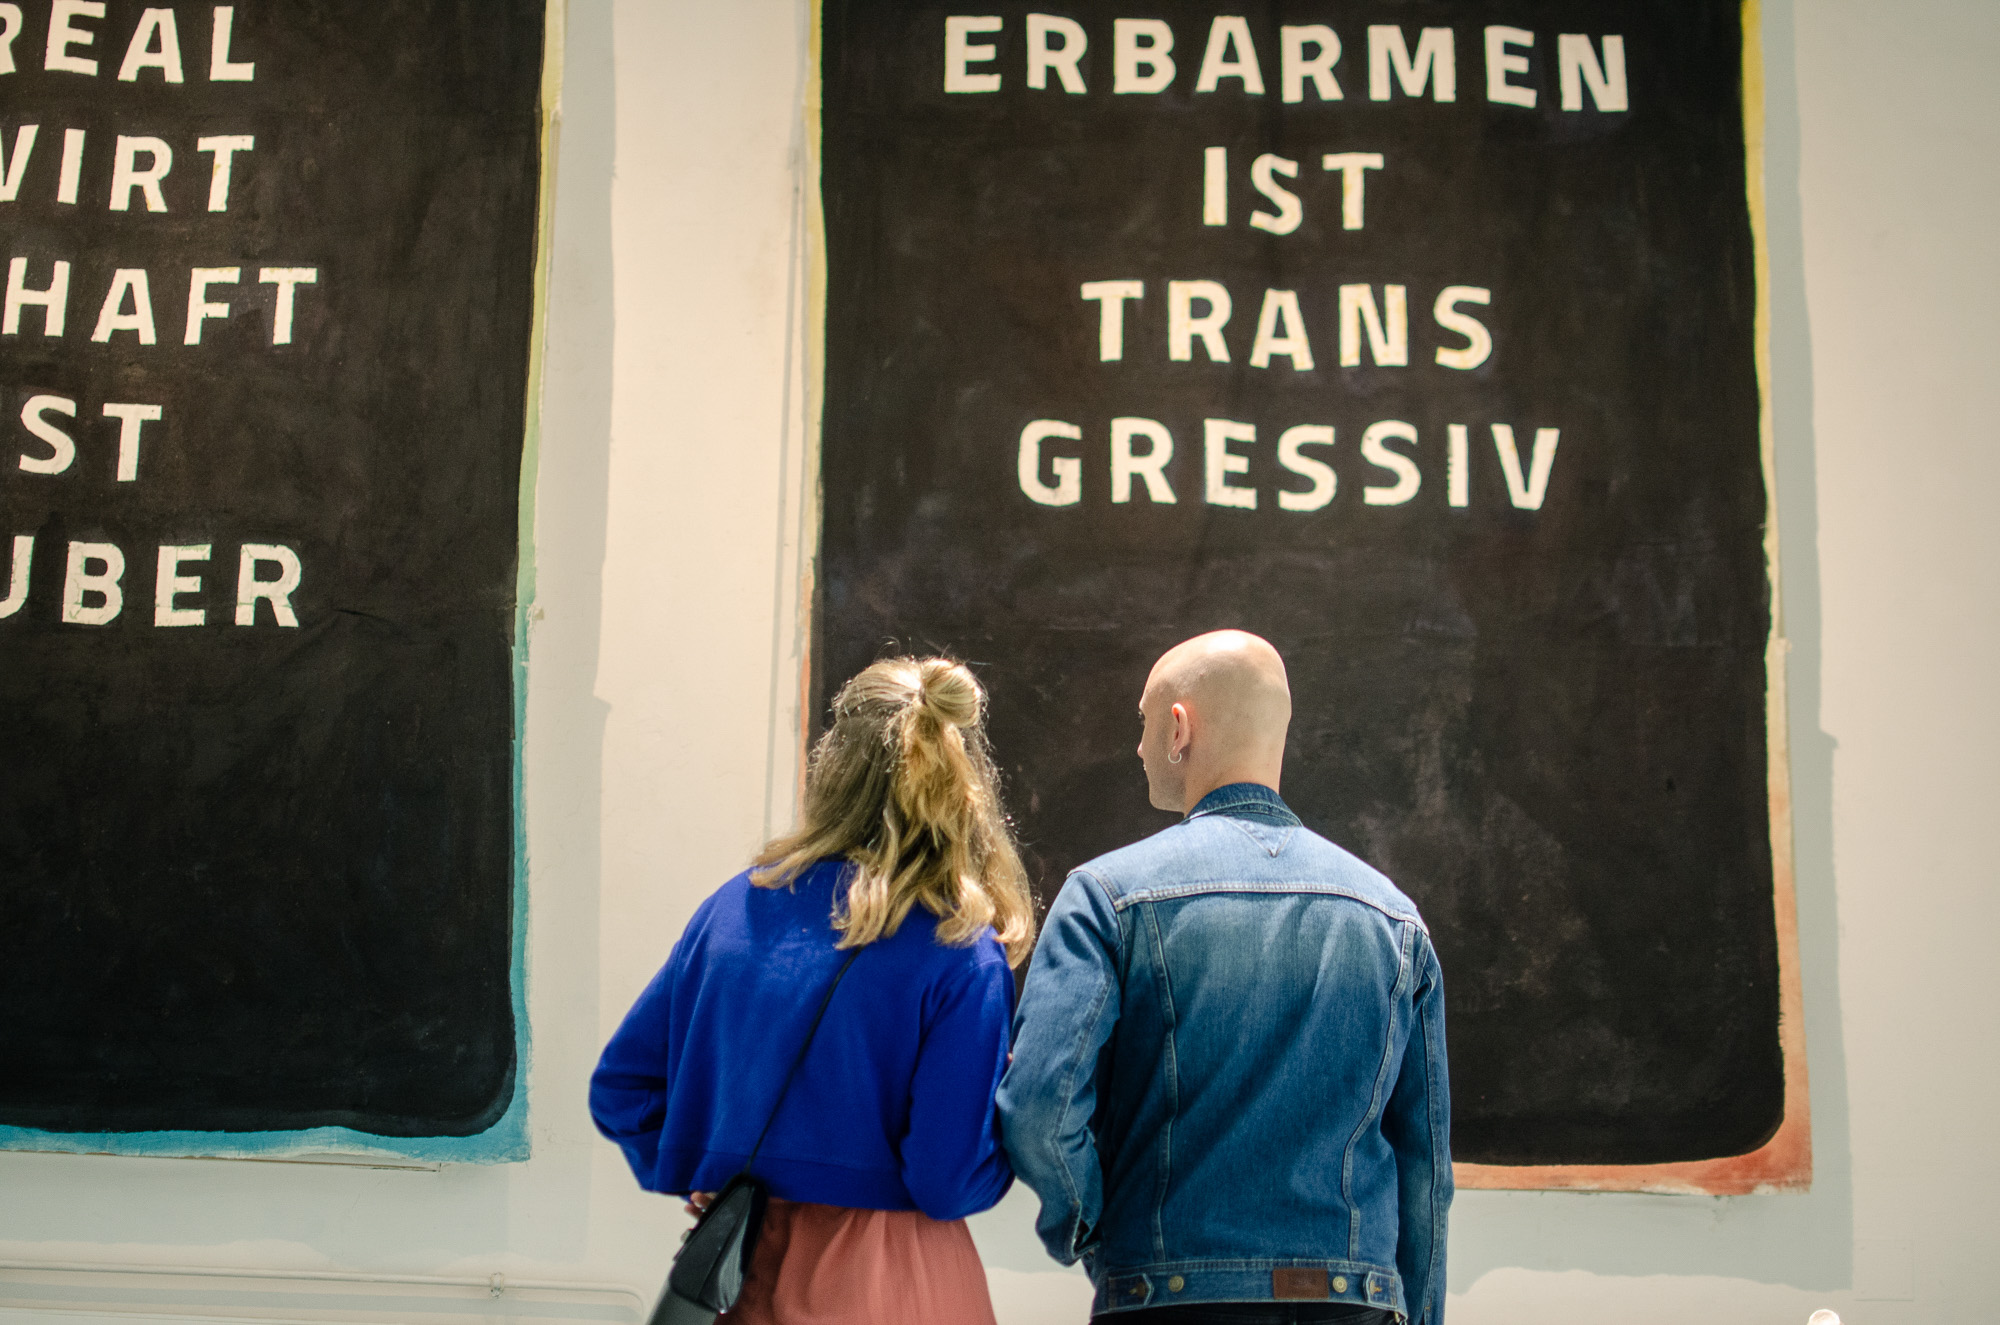 PKRD-48-Airy-Democratic-Spirituality-vernissage-PK-at-Alte-Handlesschule-20.08.21-Fanni-Papp-for-PK-31